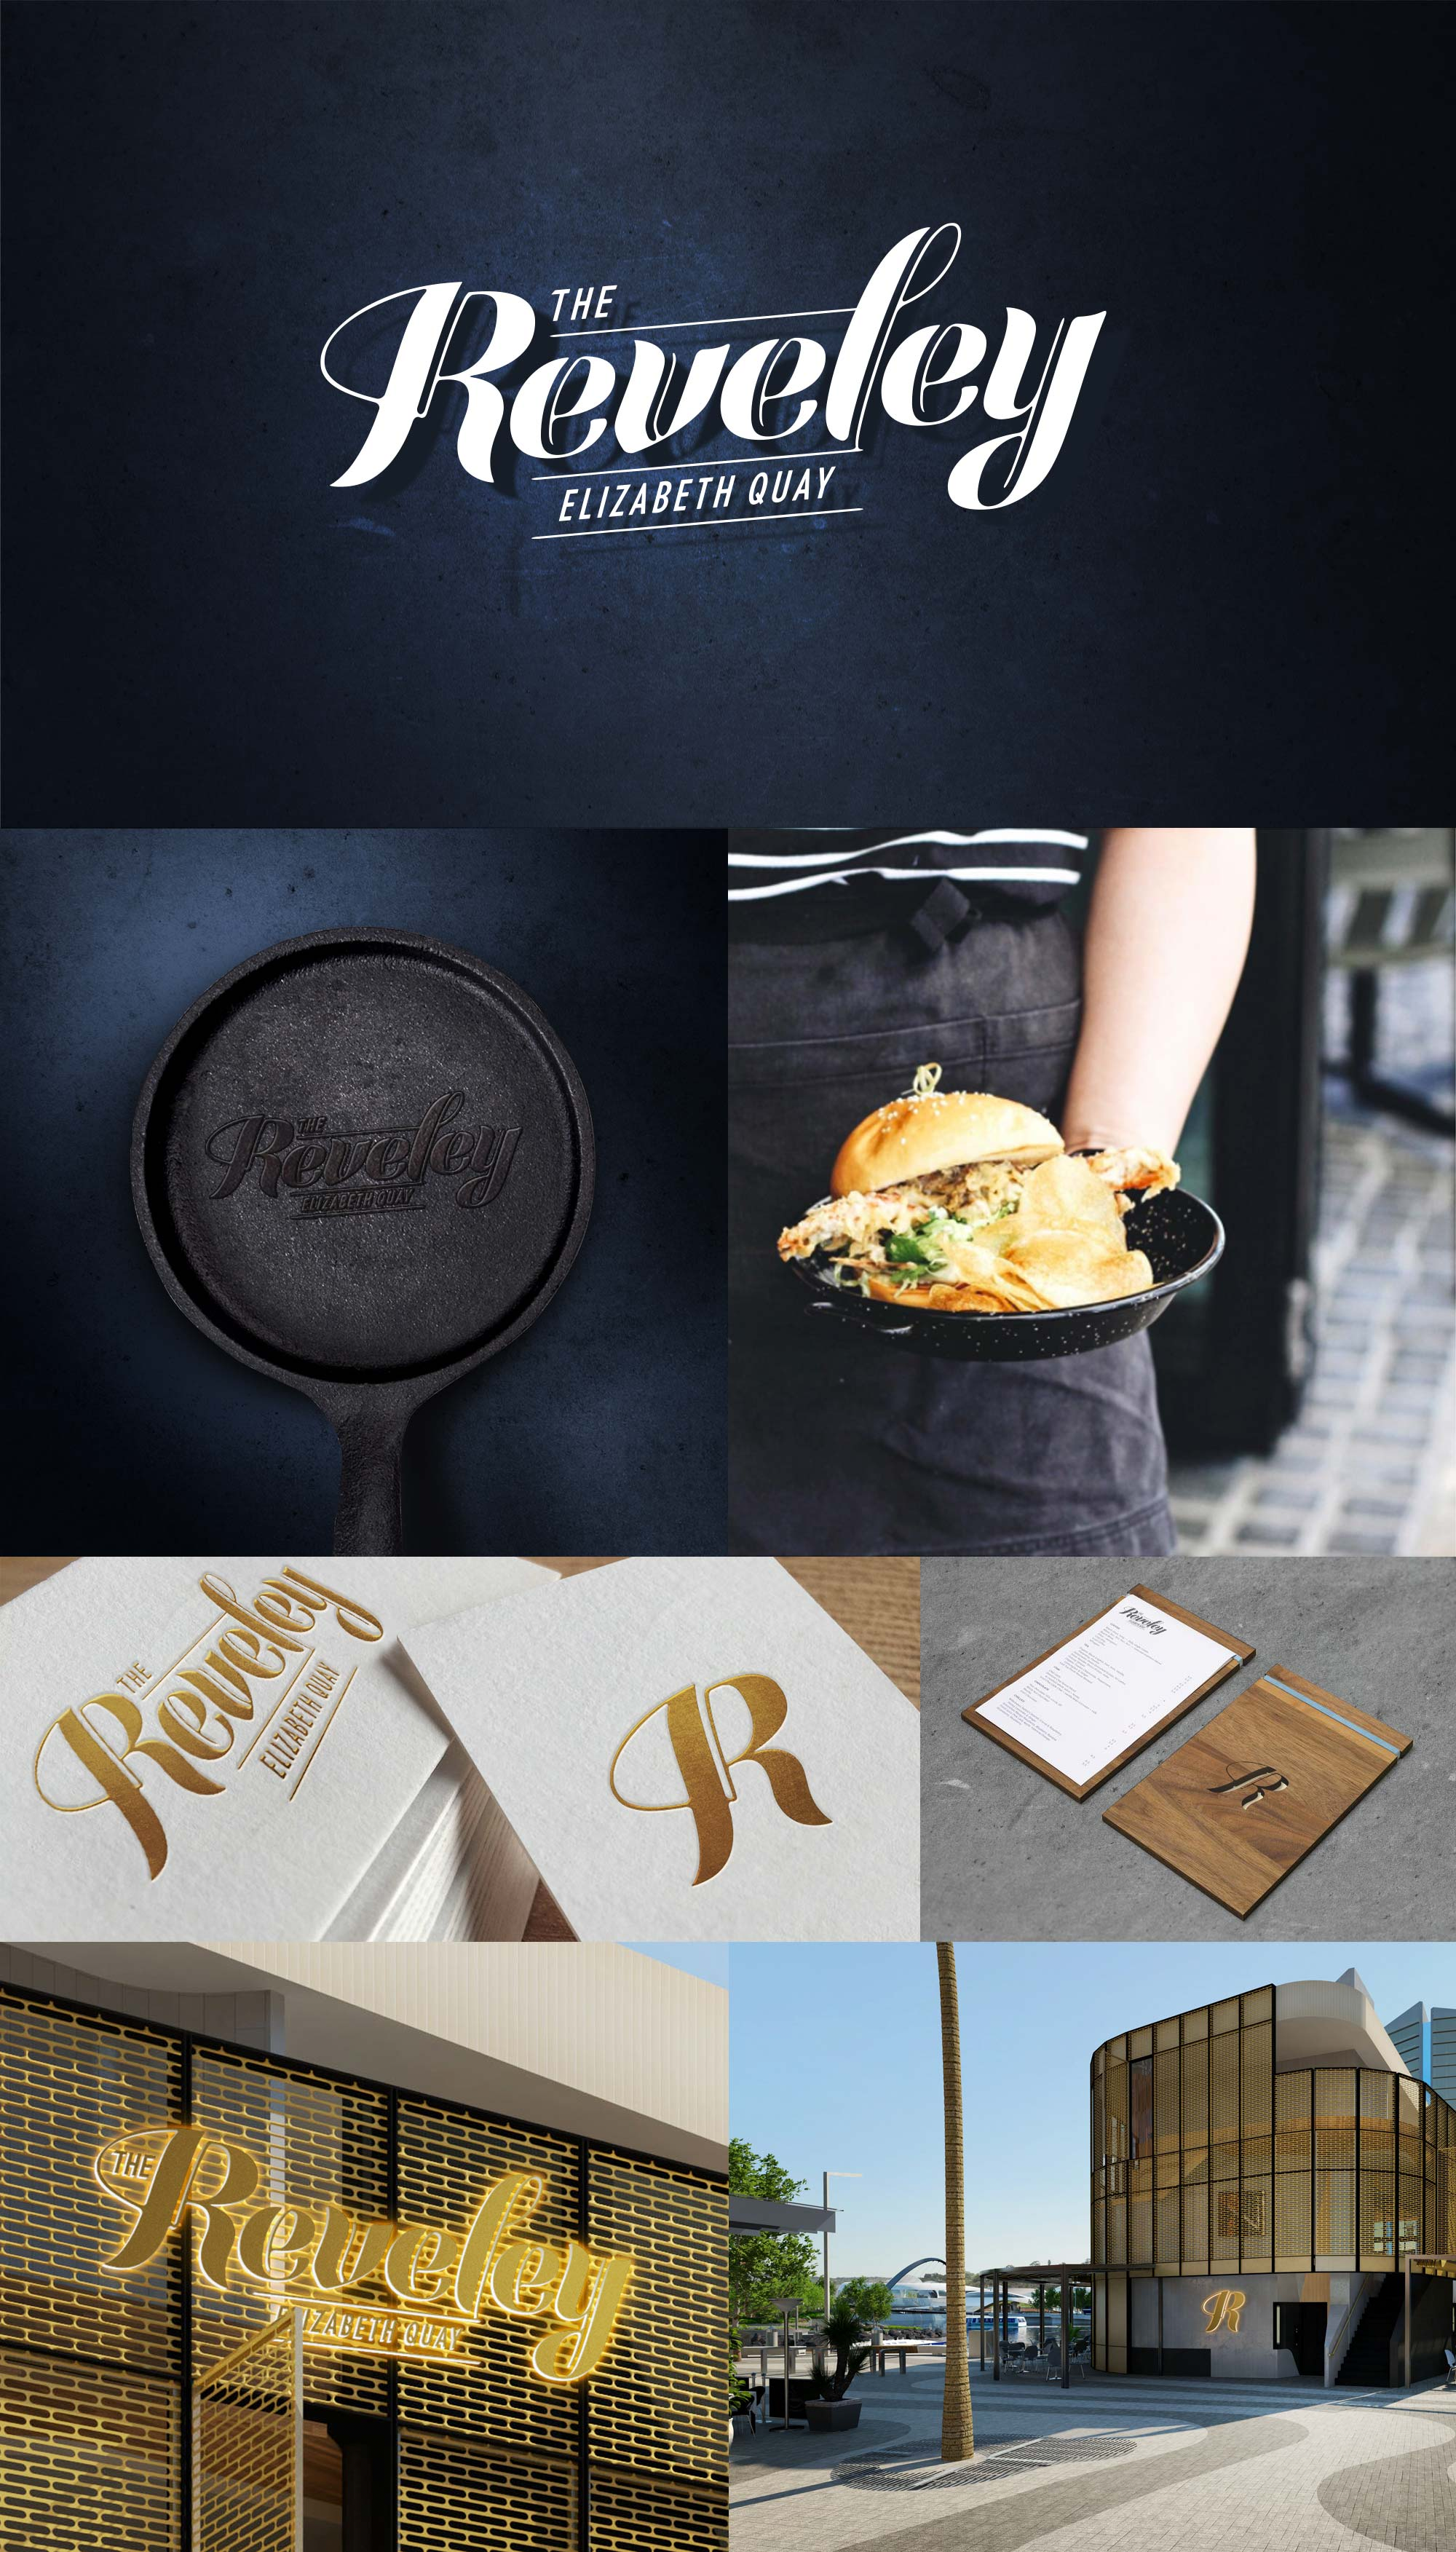 The Reveley, Elizabeth Quay – Branding and Design Collateral